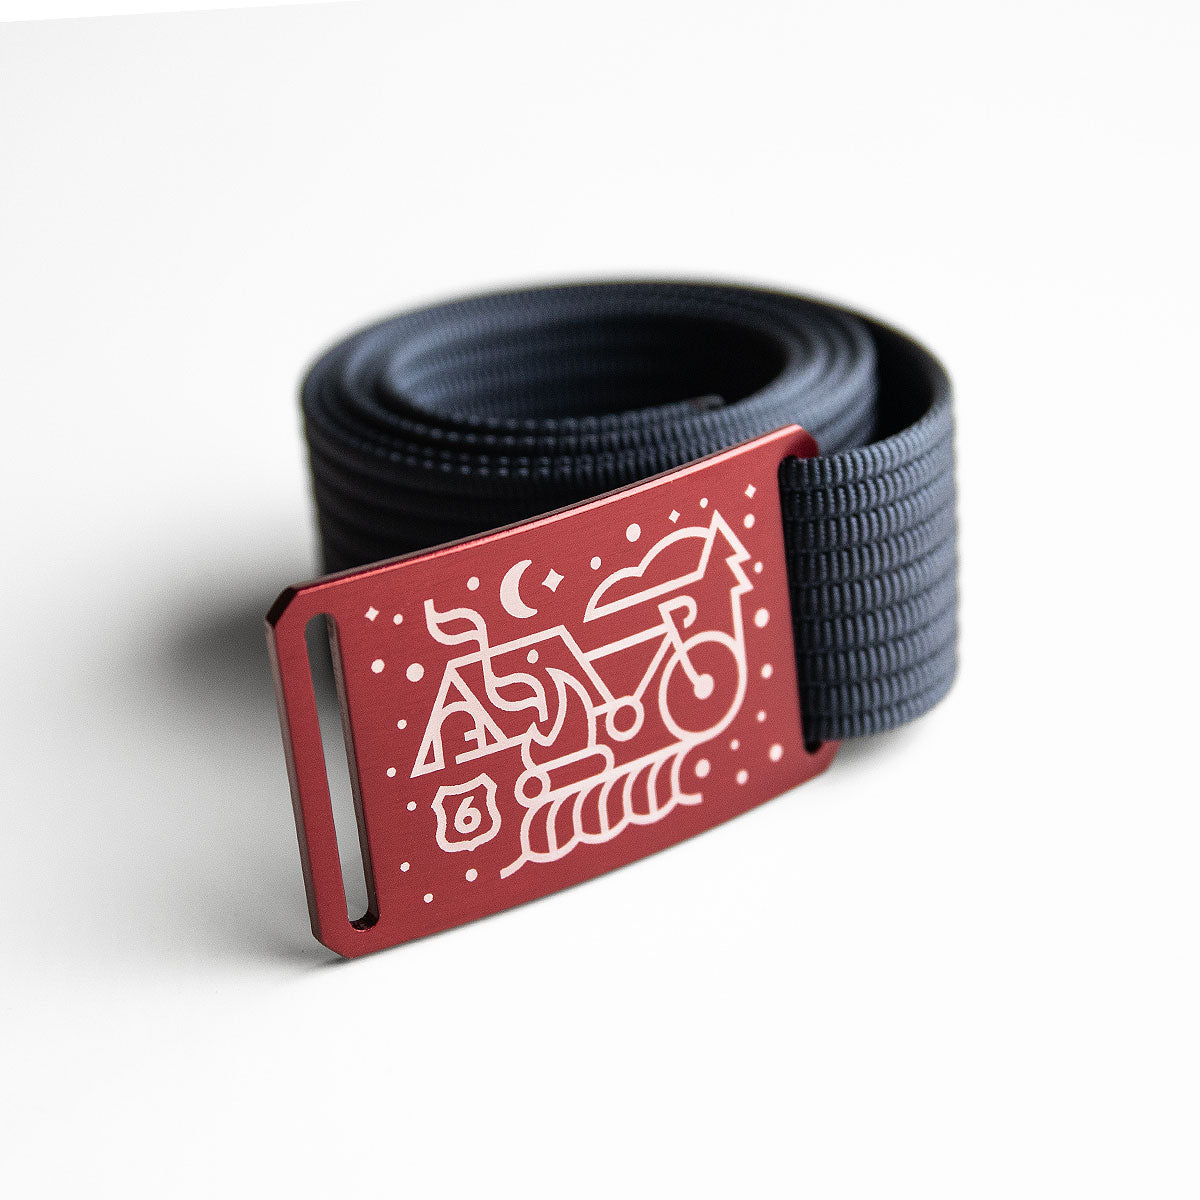 T6 Bike Camp Belt